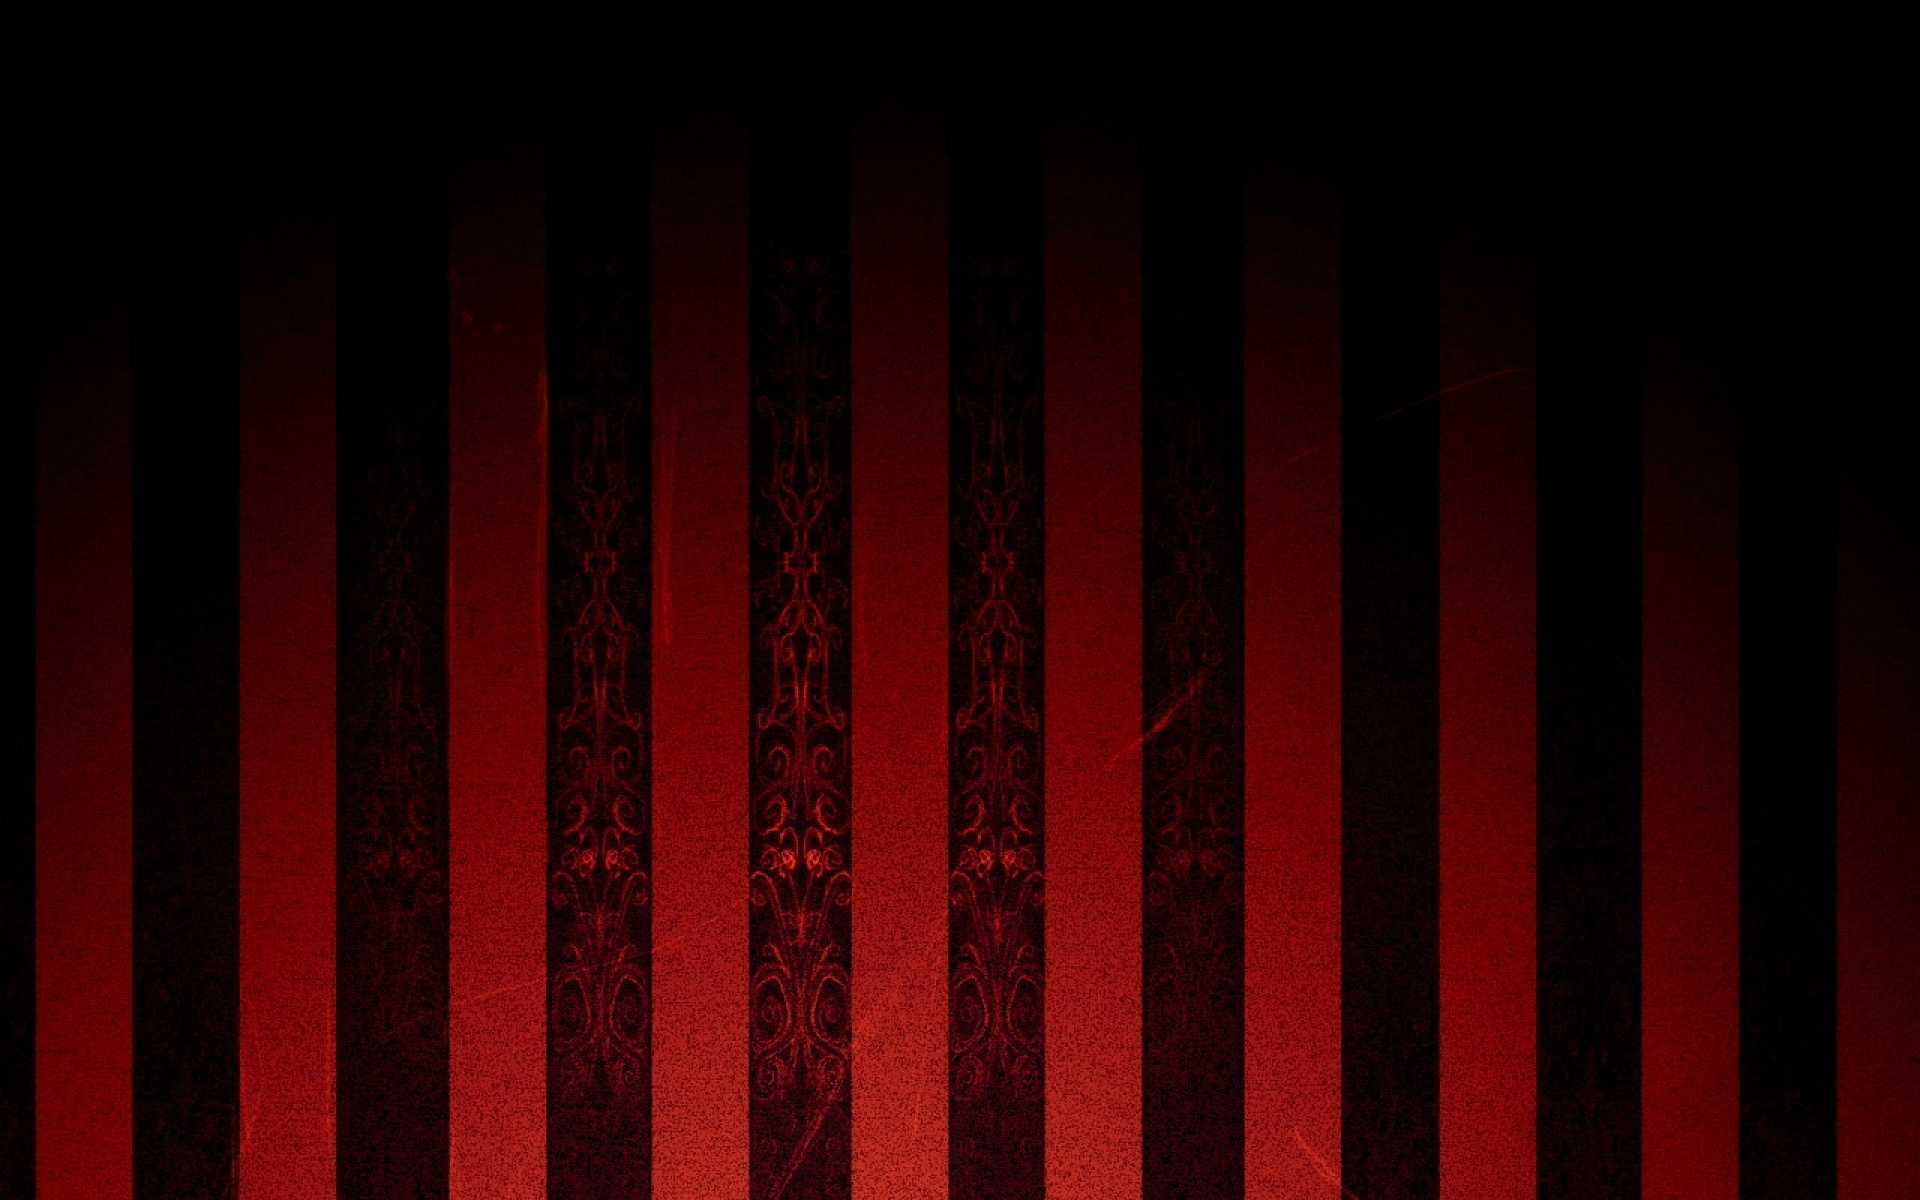 Red And Black Wallpaper 109 206478 Images HD Wallpapers Wallfoycom 1920x1200